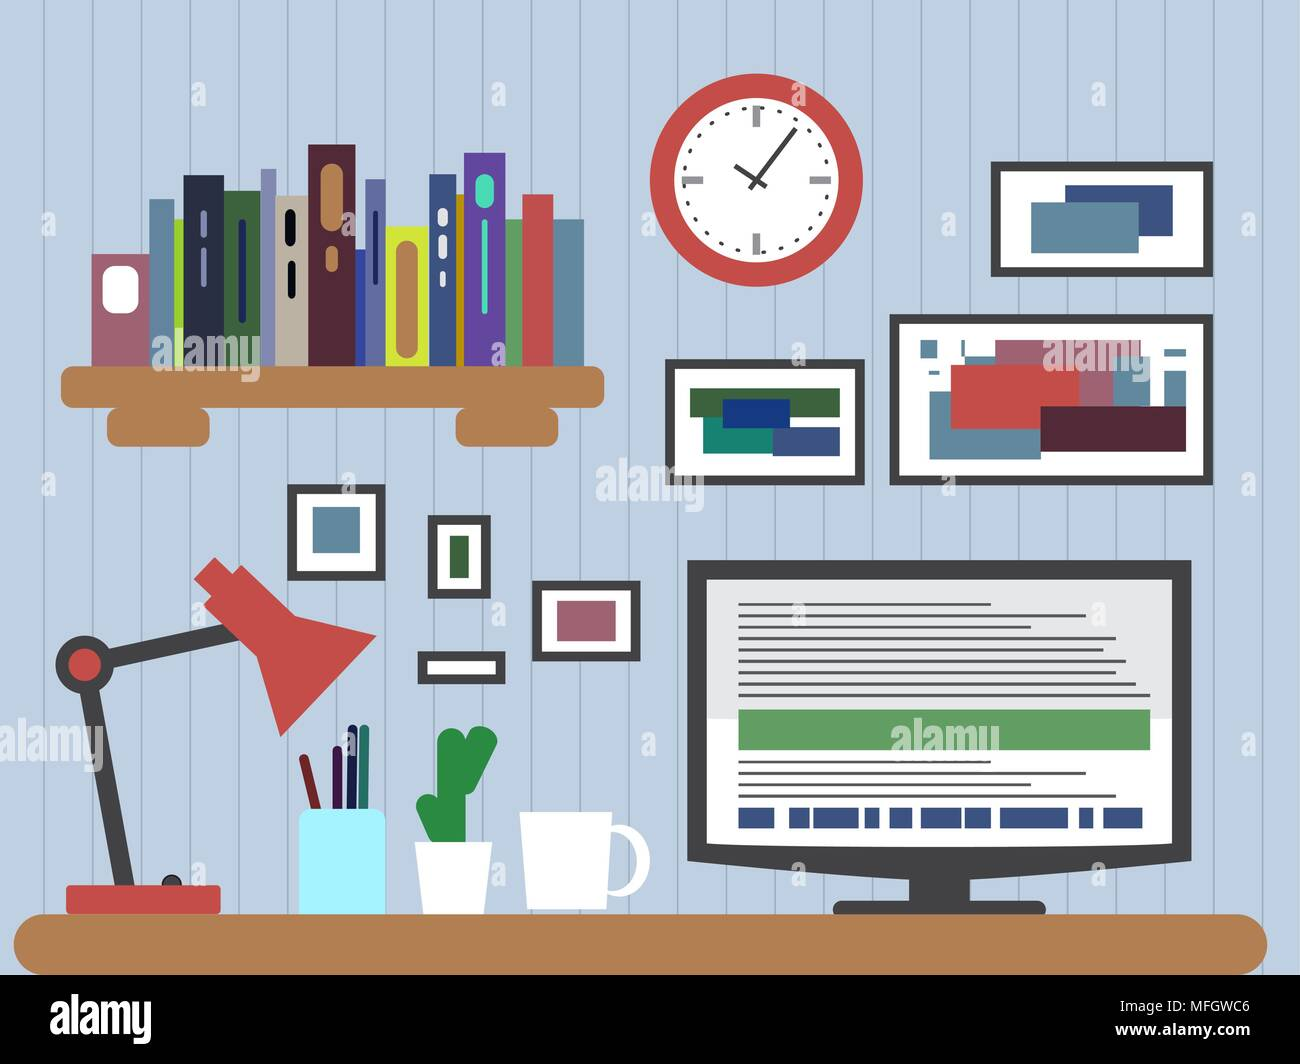 Flat design of modern office interior with designer desktop showing design application with interface icons and elements in minimalist style and color - Stock Photo